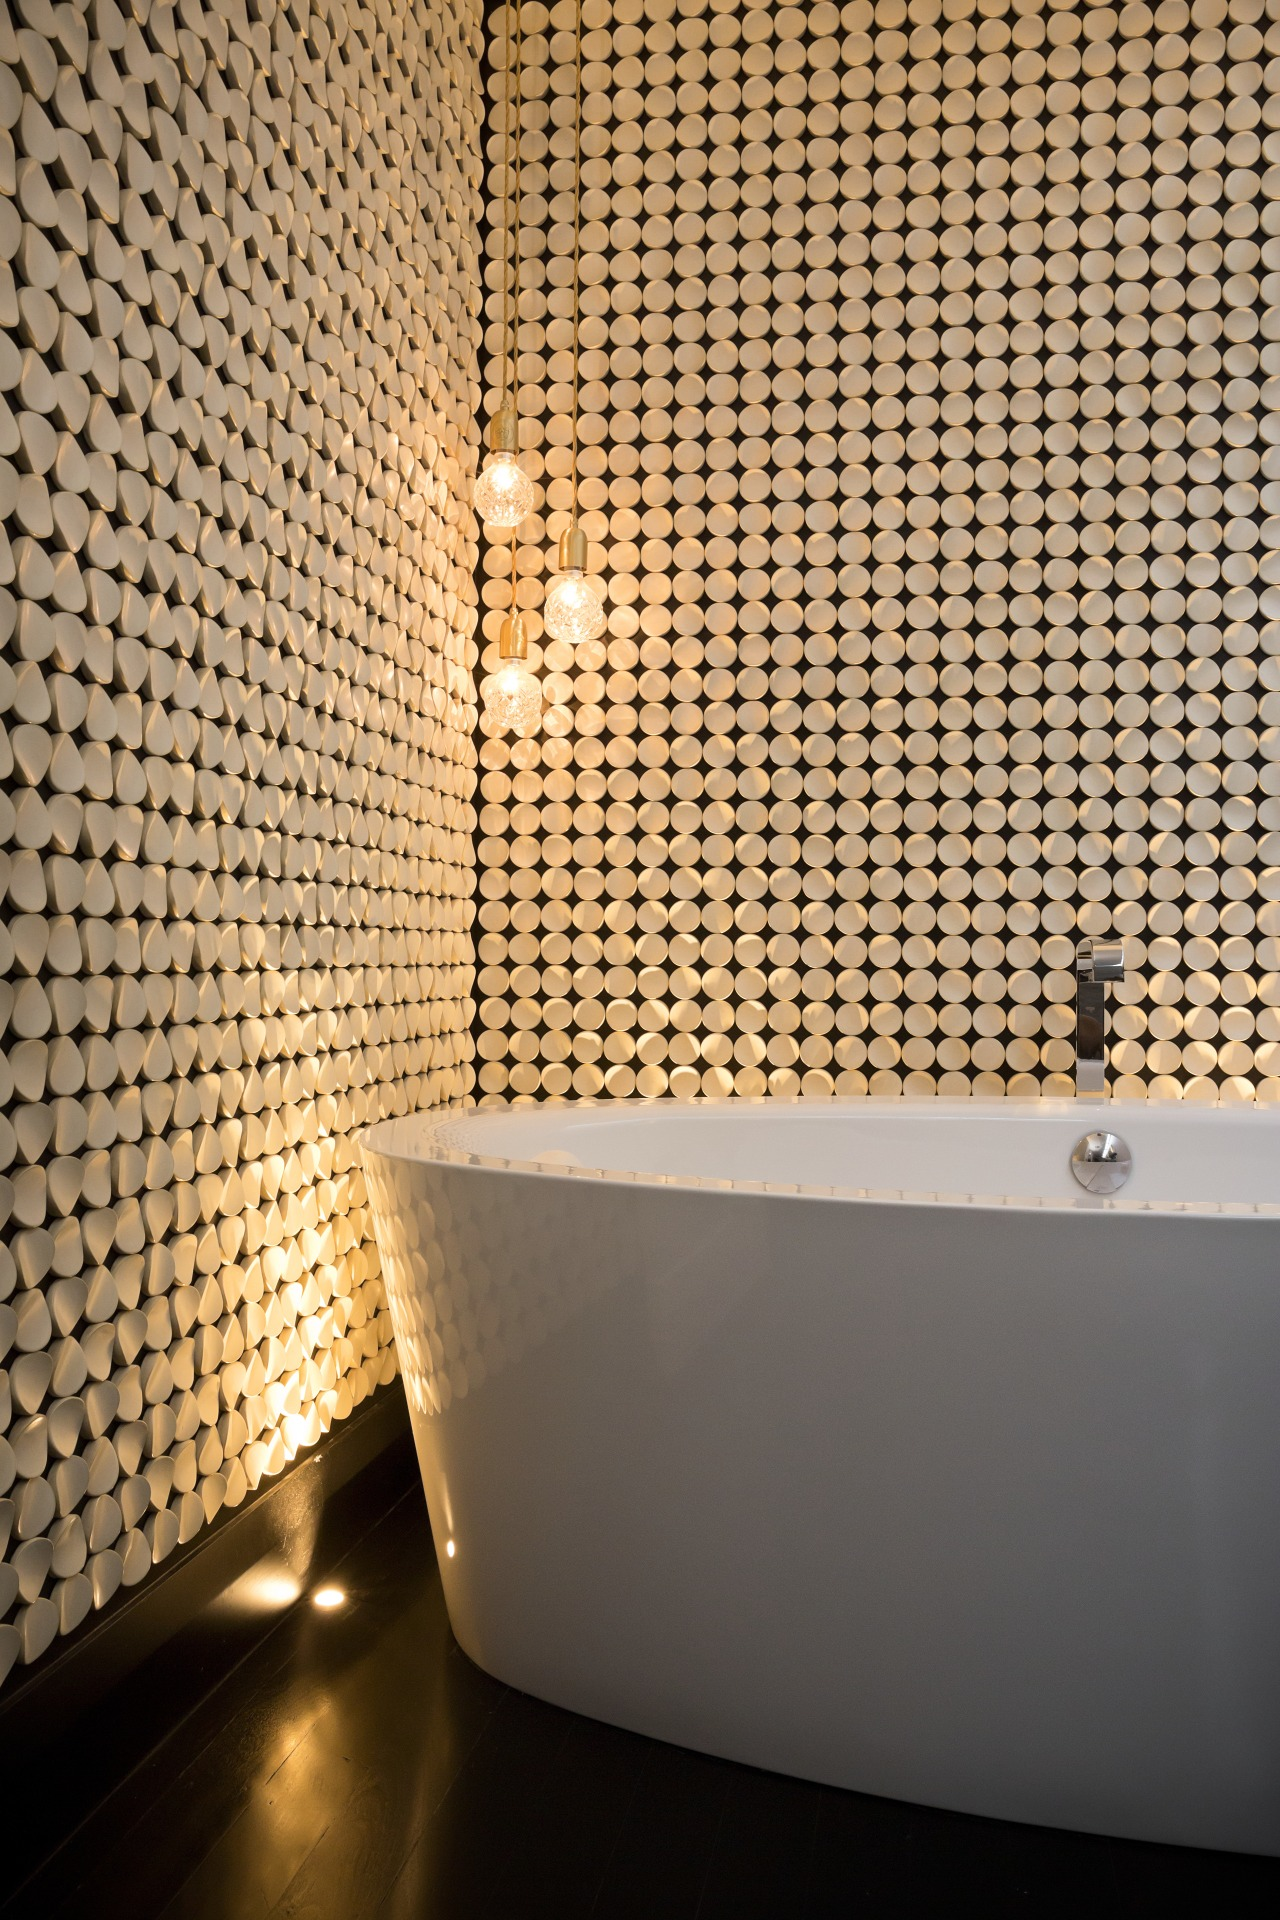 Labour of love this feature wall was built bathroom, ceiling, daylighting, floor, flooring, interior design, light, lighting, lighting accessory, pattern, tile, wall, orange